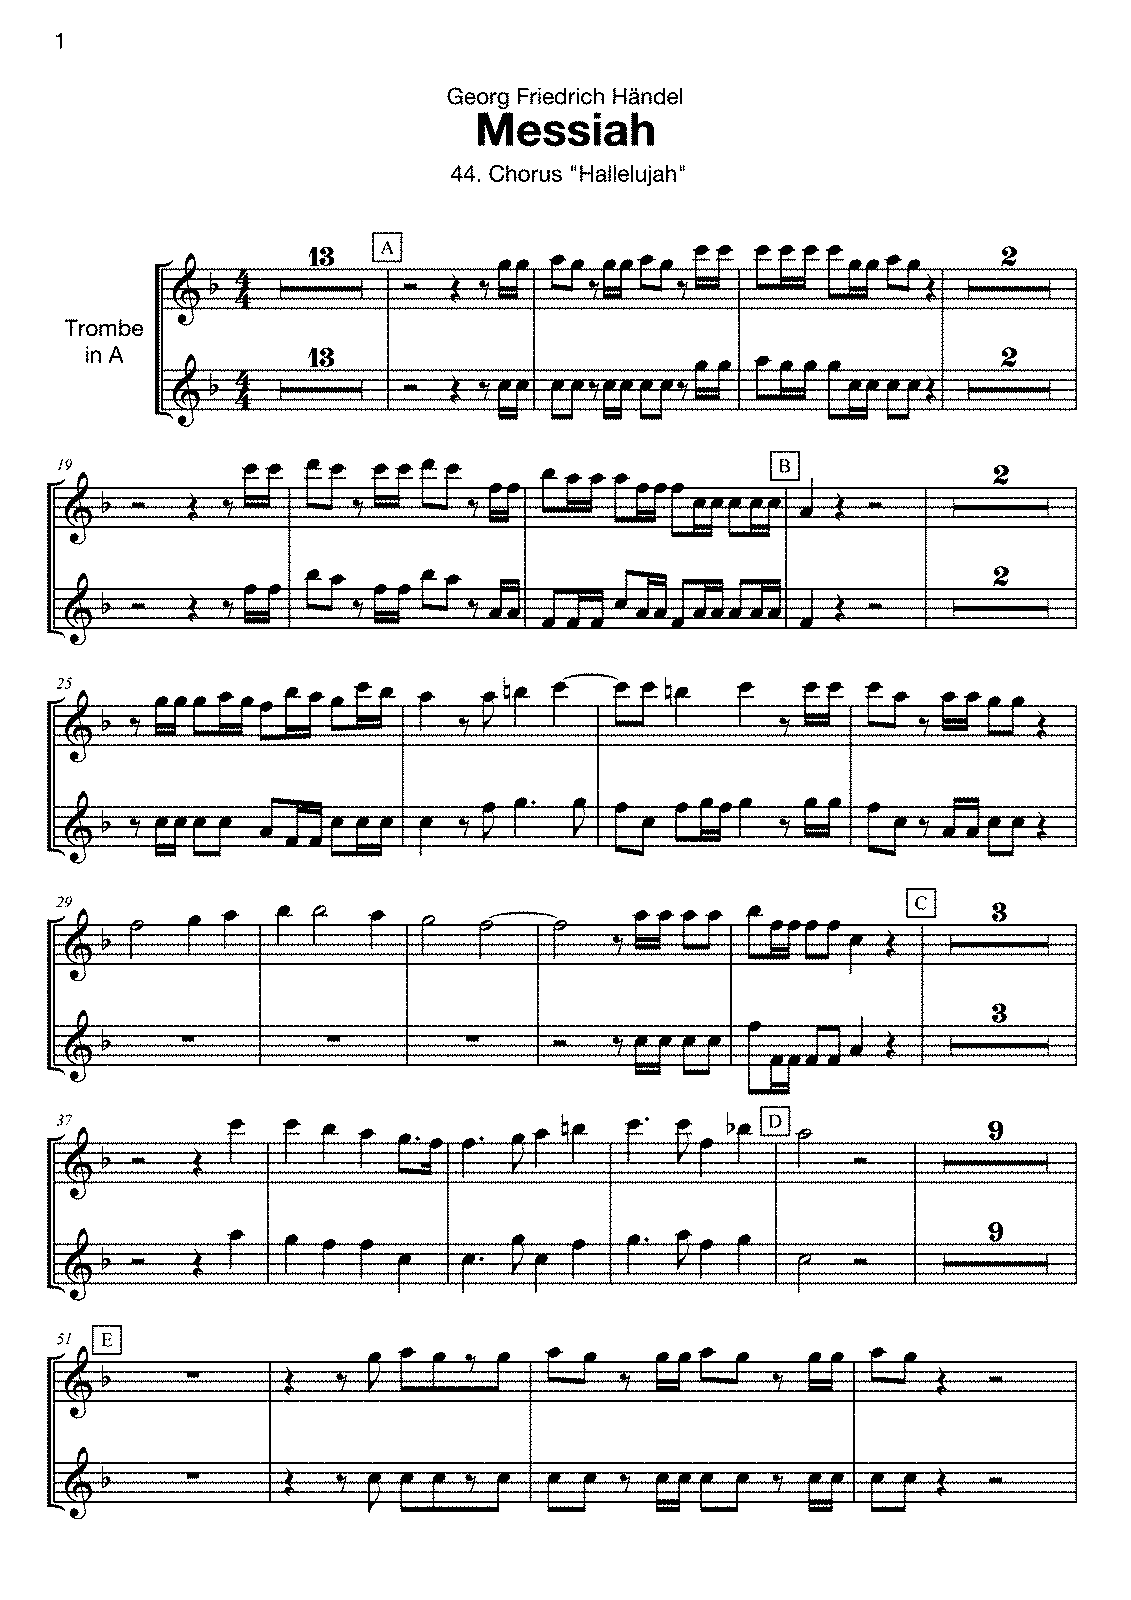 PMLP22568-Händel - Messiah - Hallelujah - Trp in A.pdf